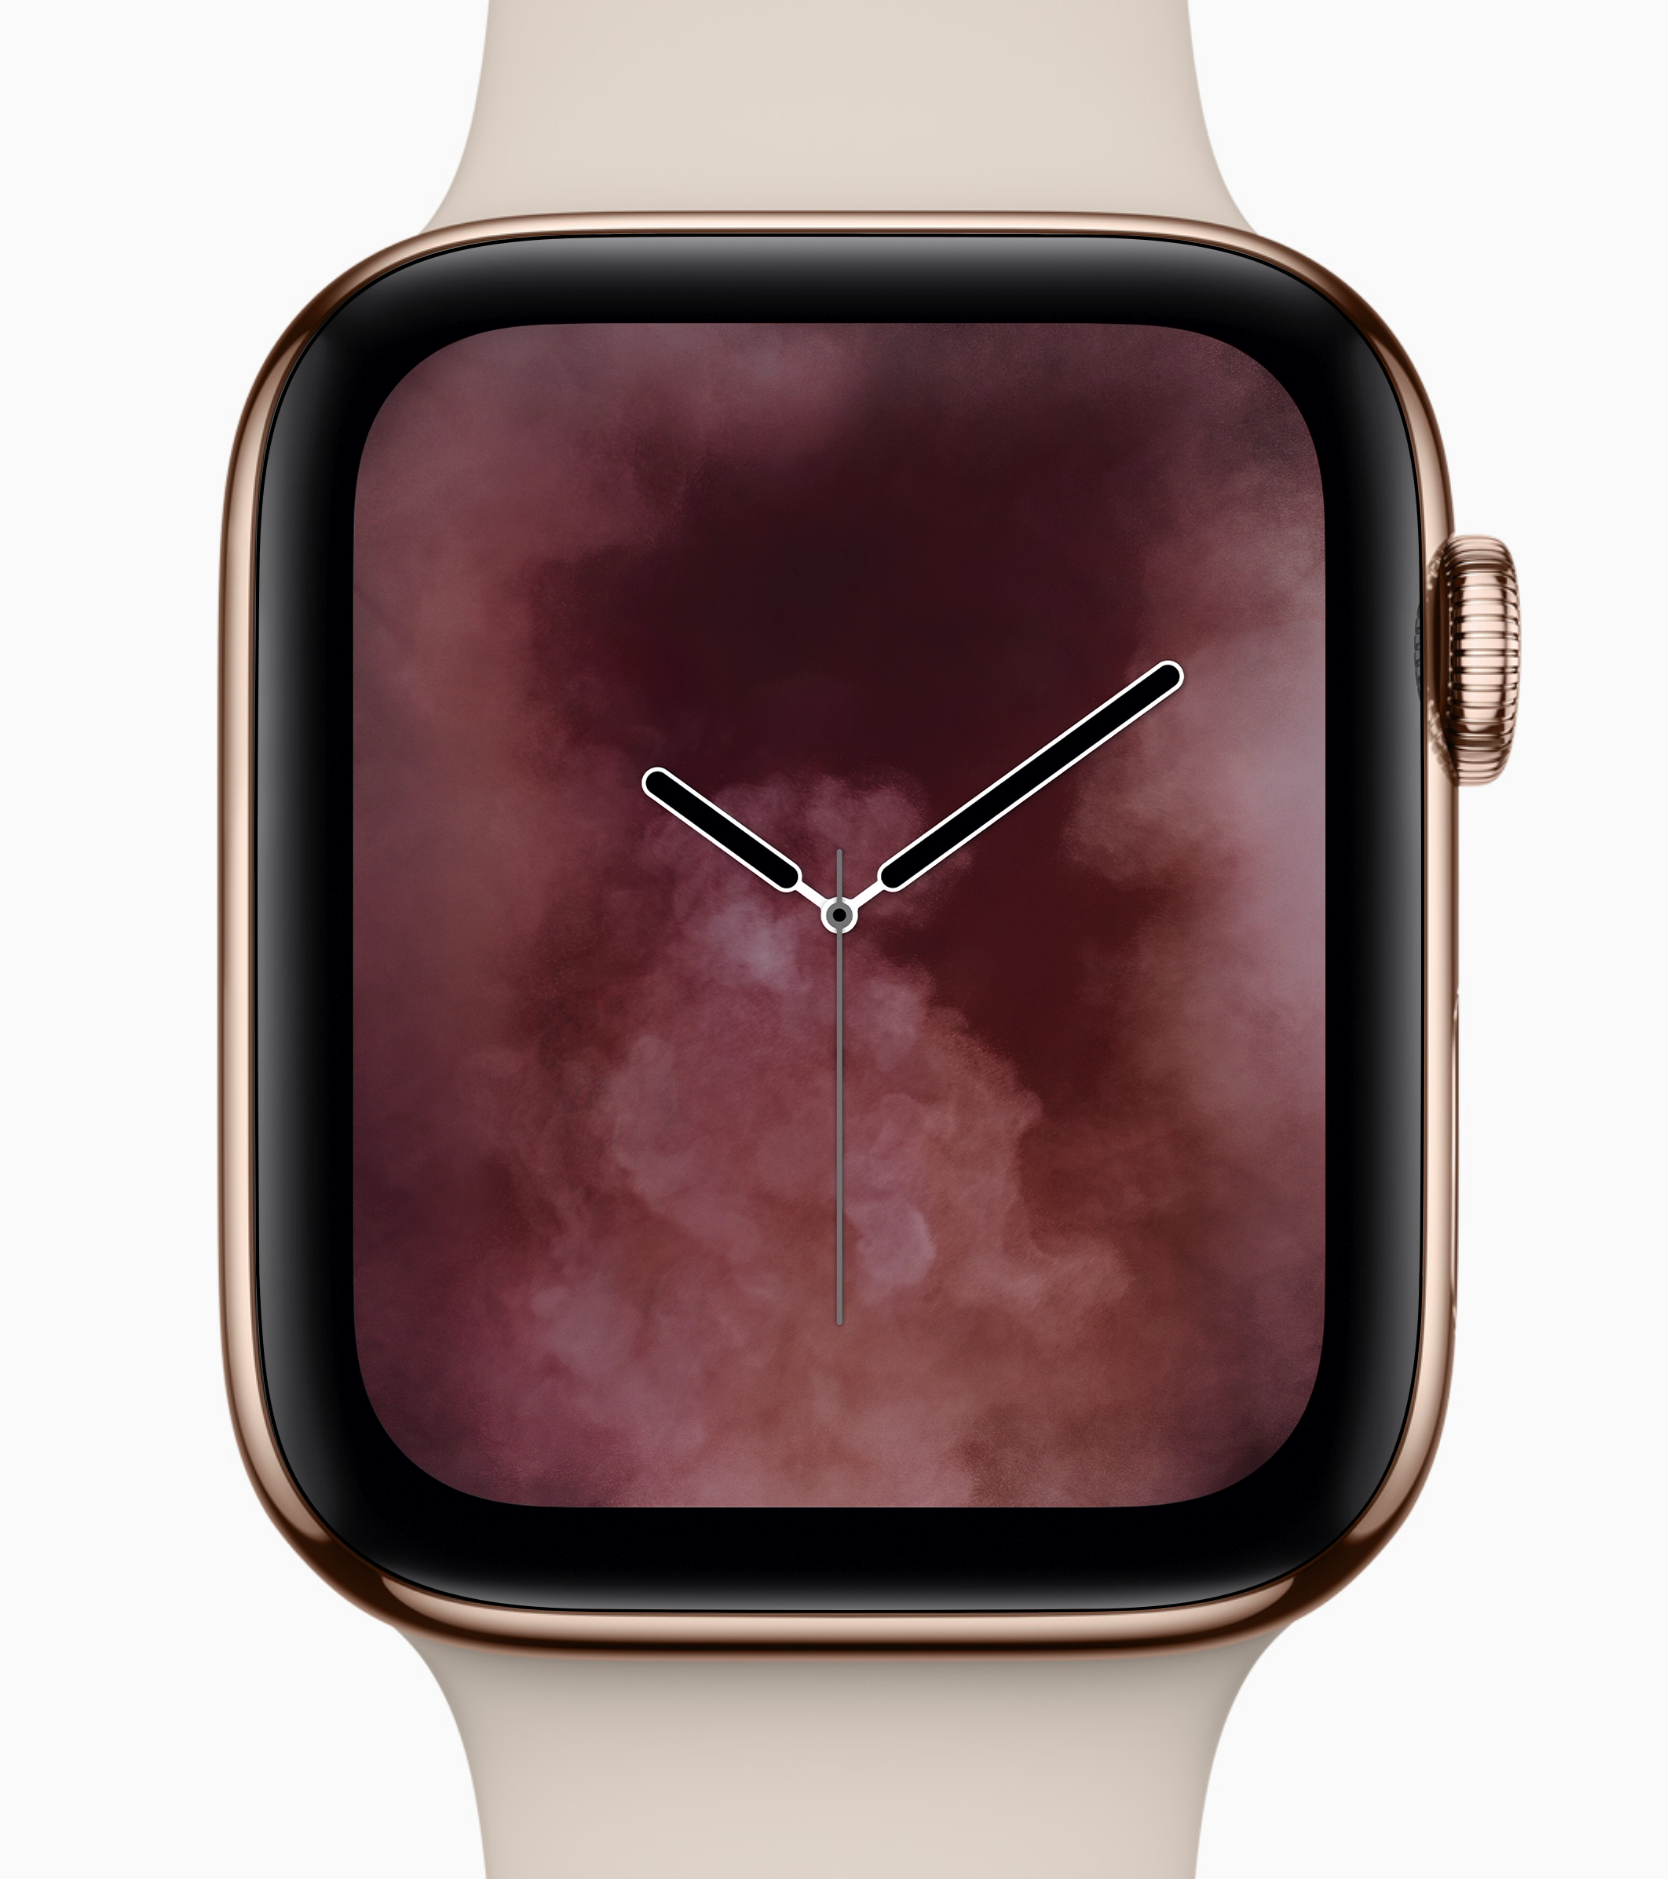 Apple Watch Series 4 meilleure montre connectée - Blog SFAM